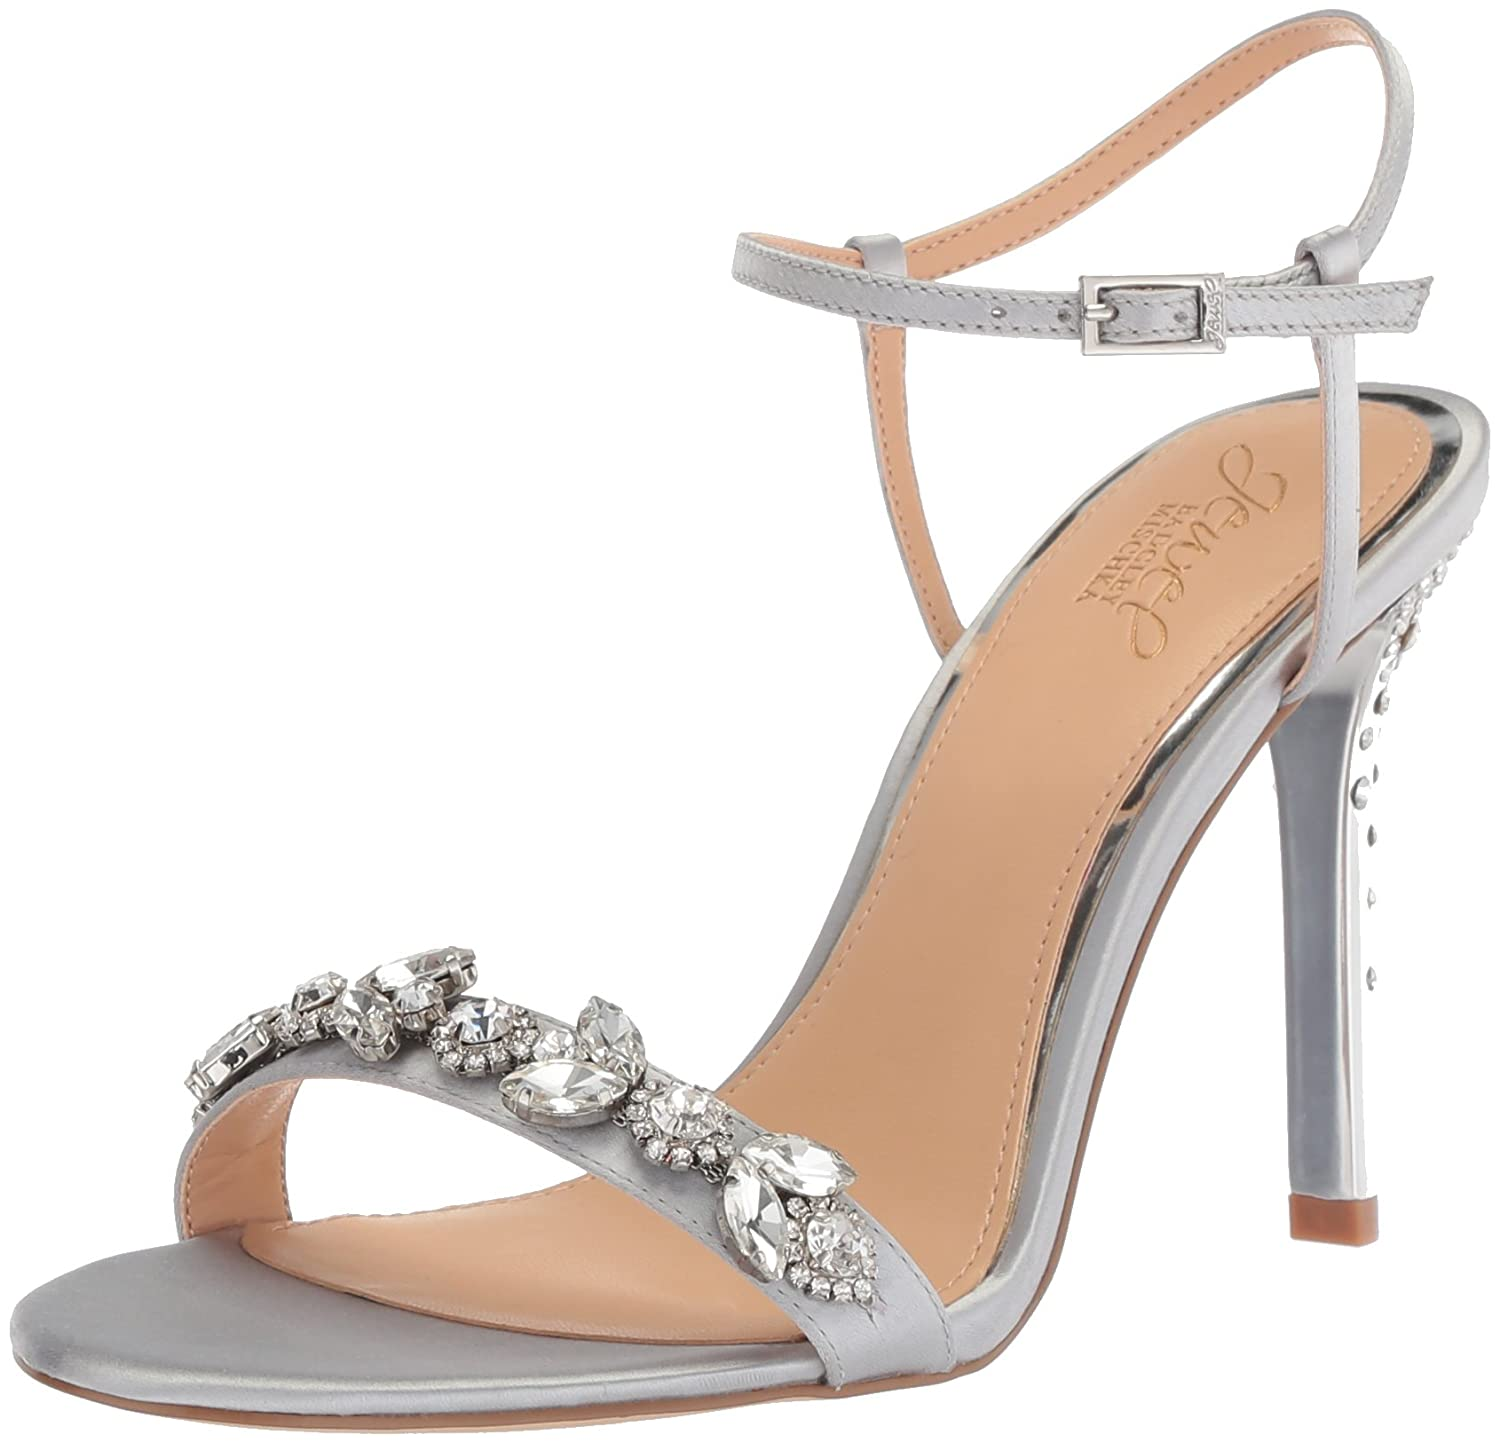 Badgley Mischka Jewel Women's Tex Heeled Sandal Jewel Badgley Mischka JW2314